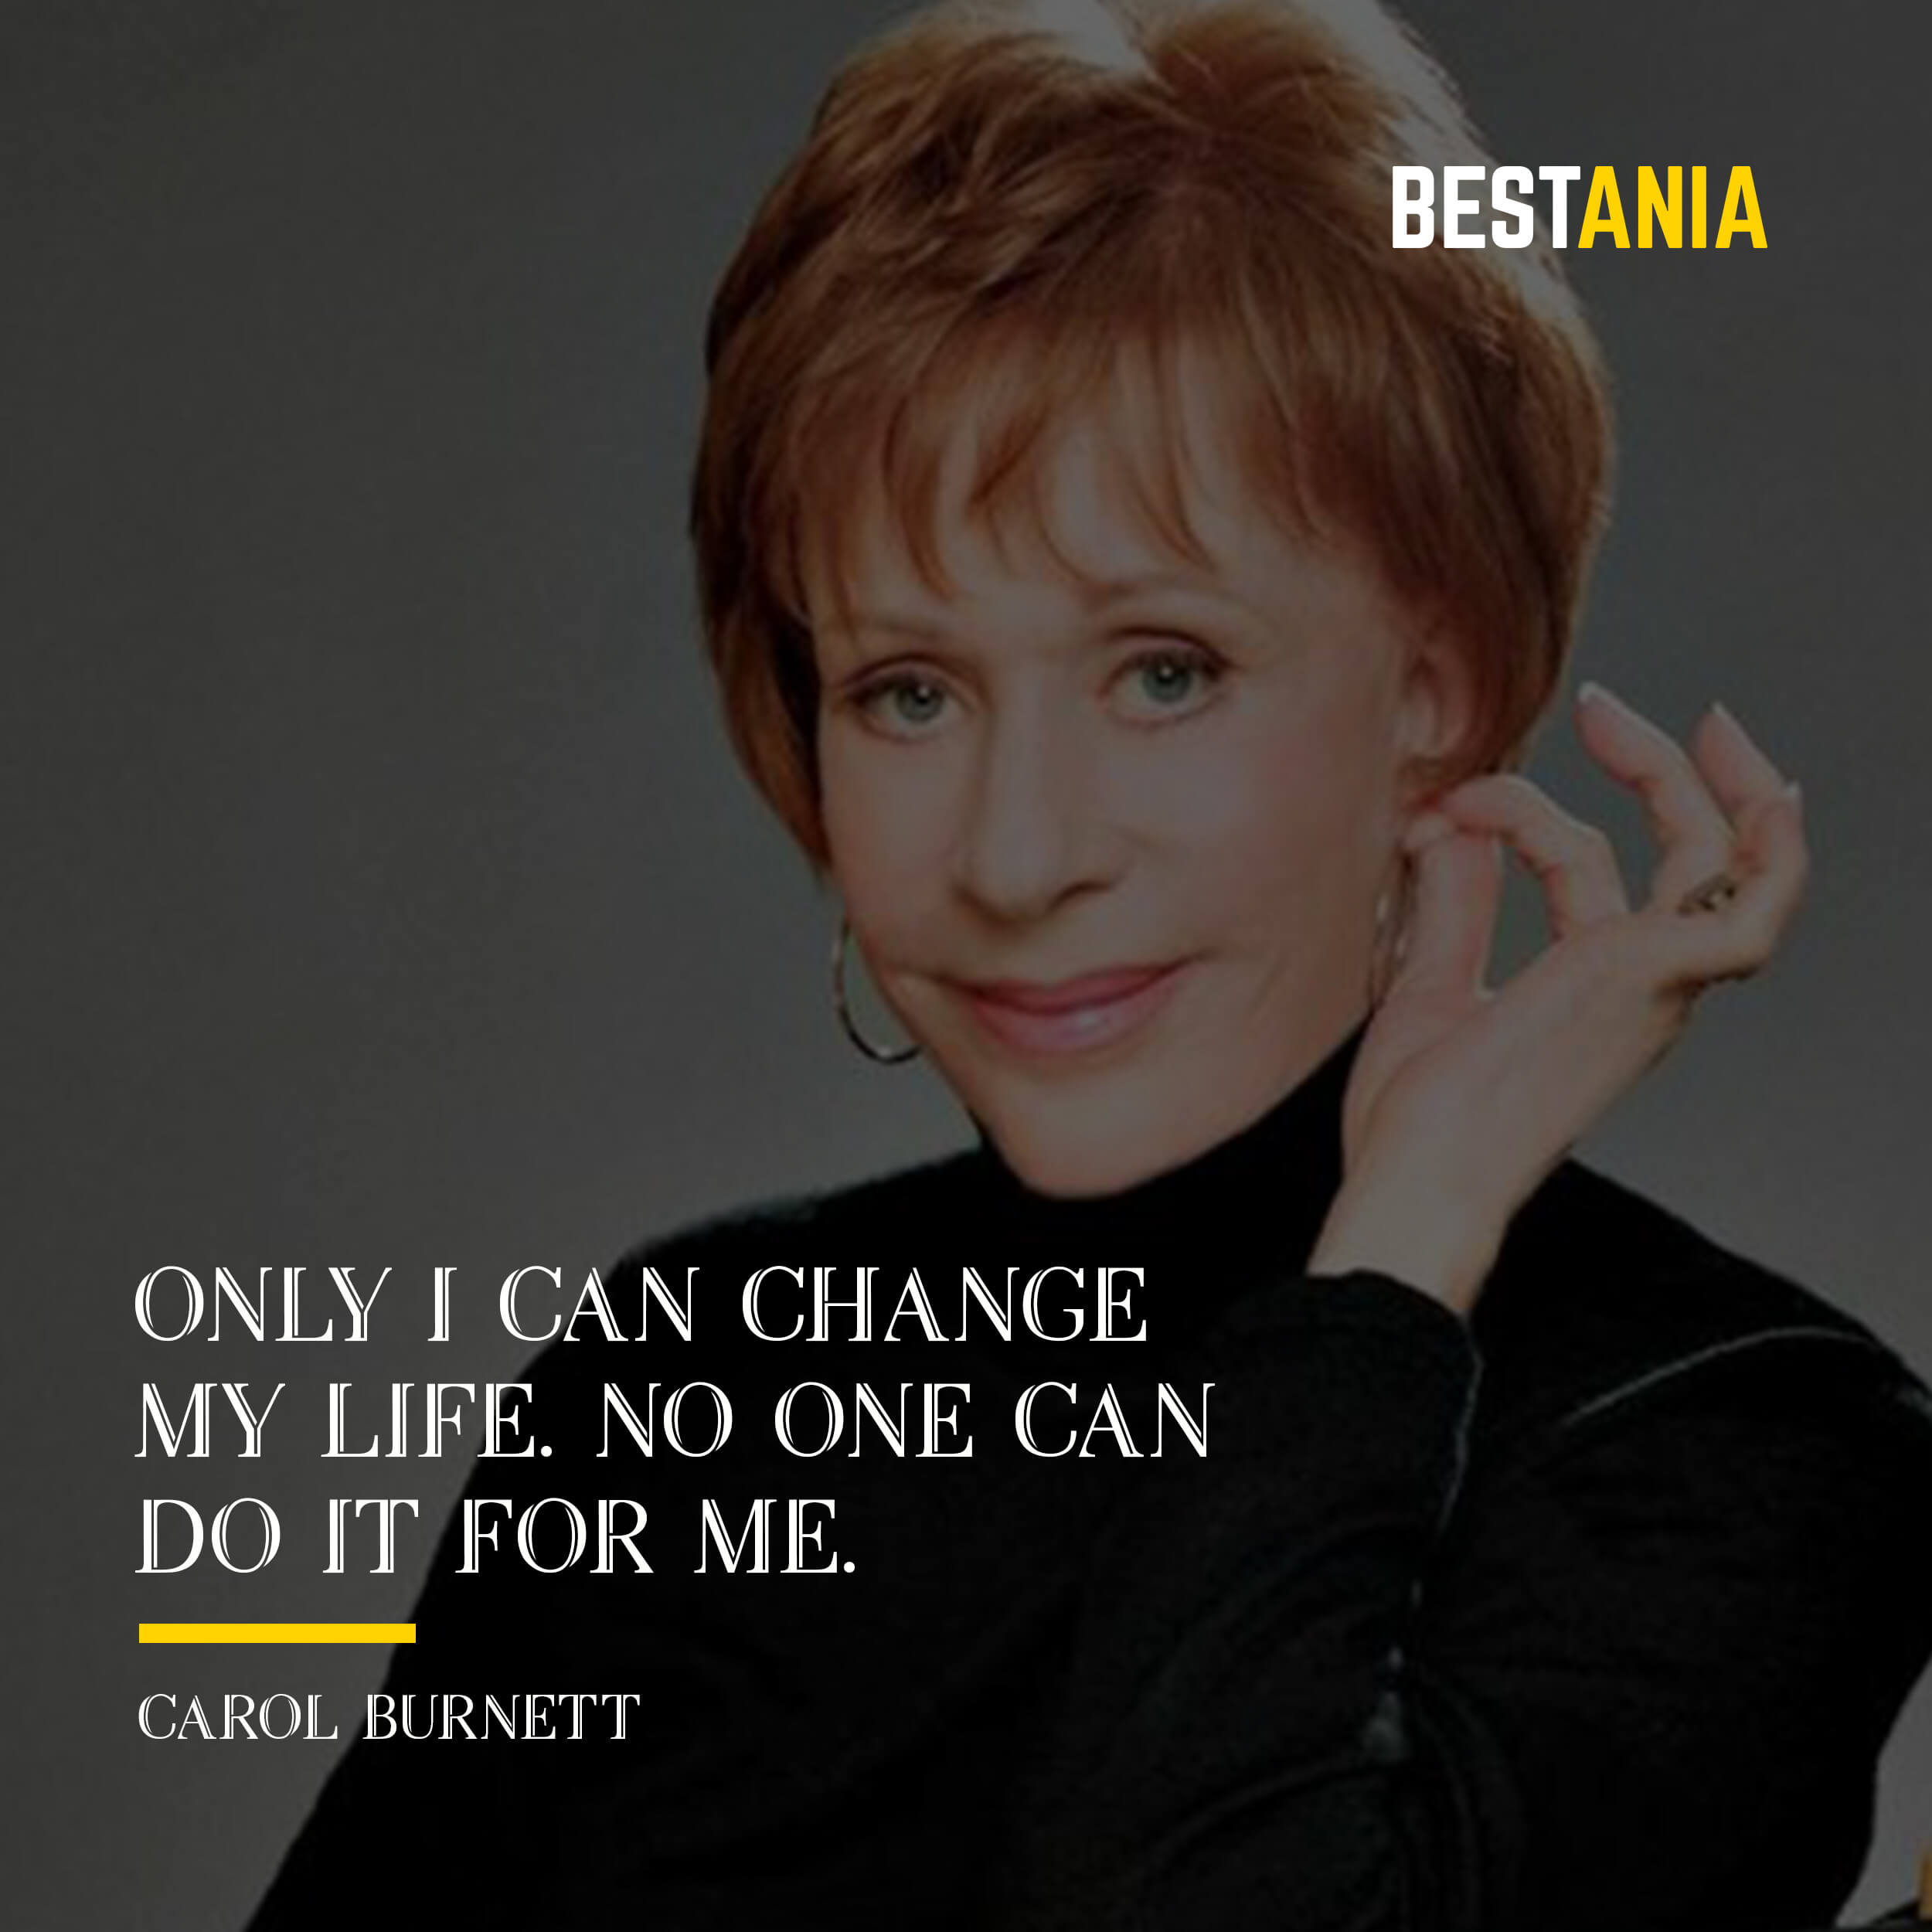 """""""ONLY I CAN CHANGE MY LIFE. NO ONE CAN DO IT FOR ME.""""  CAROL BURNETT"""